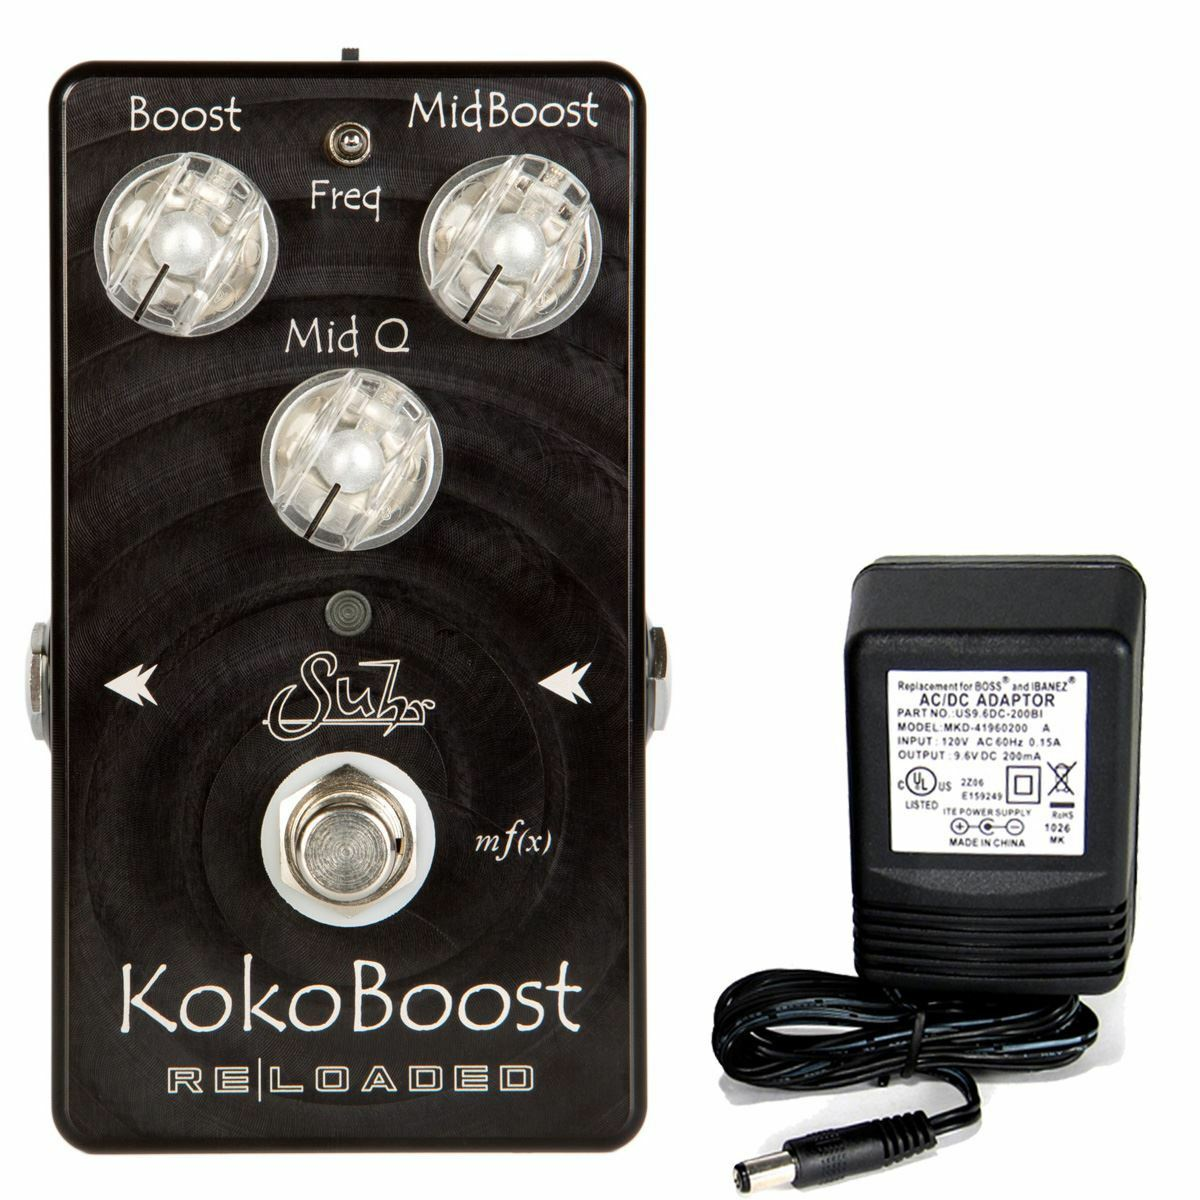 Suhr Koko Boost Reloaded pedal w/ 9v power supply